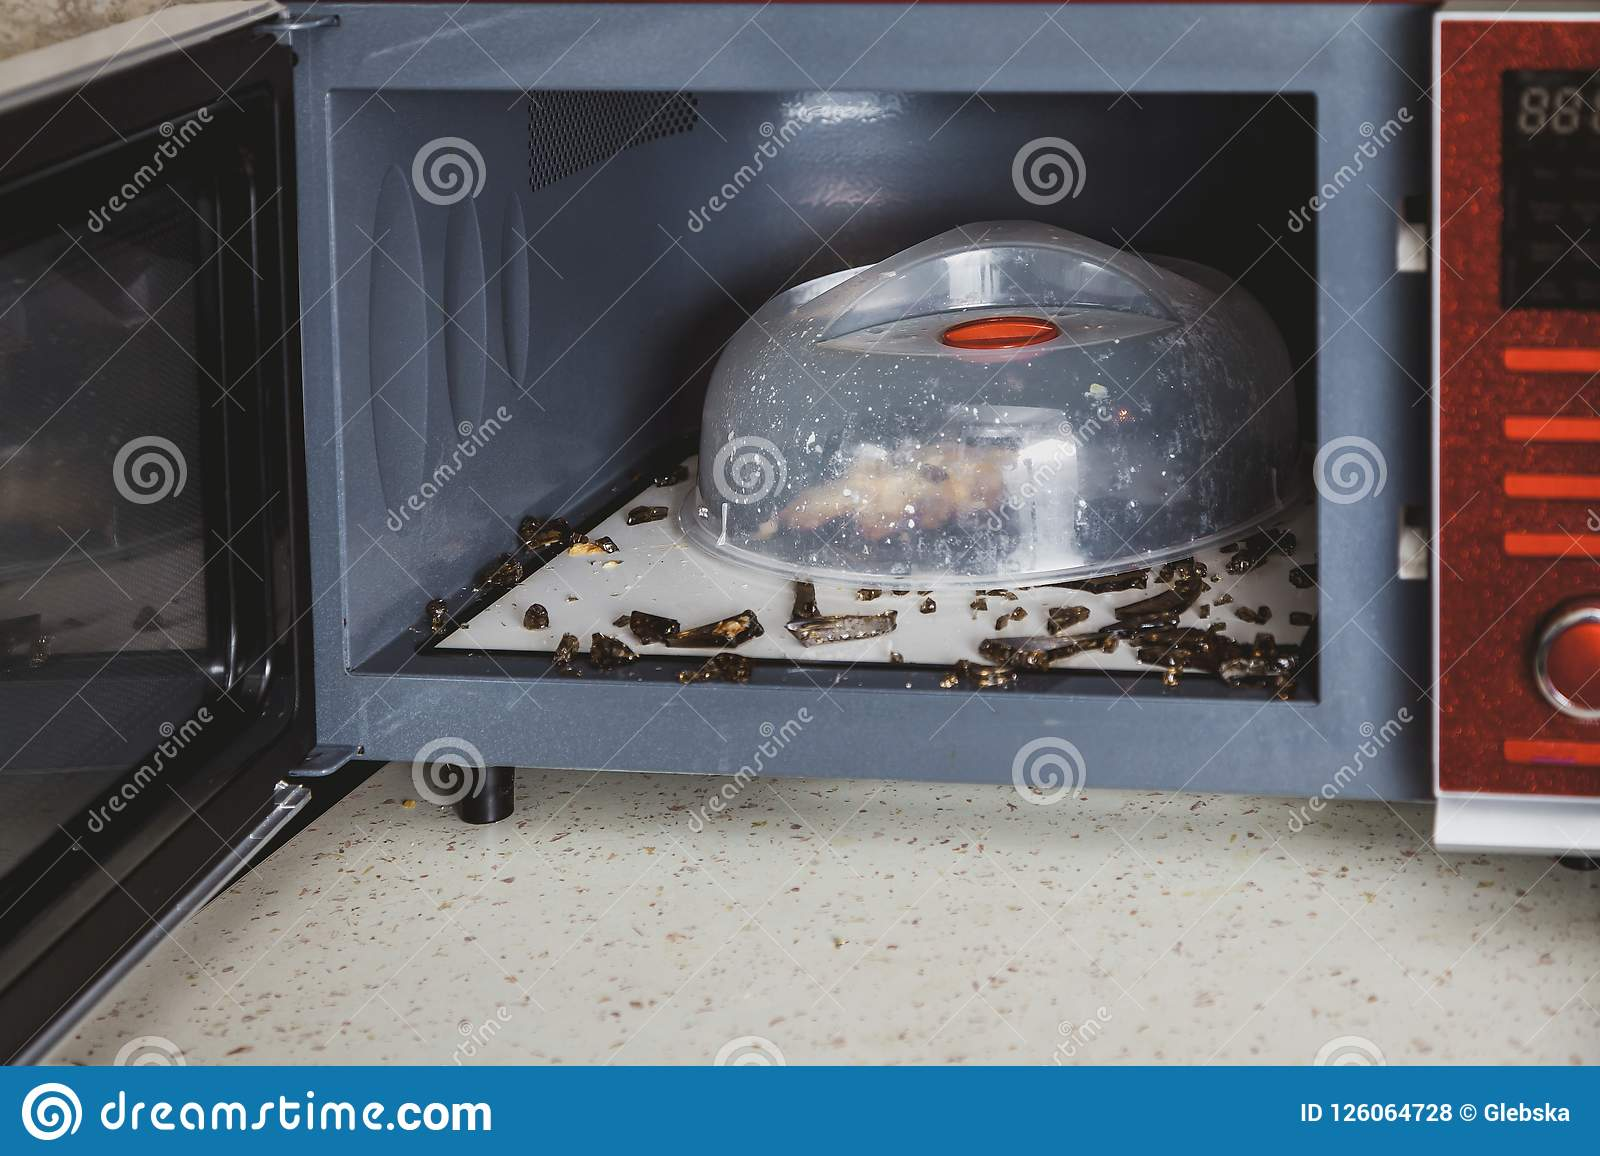 Glass Plate Cover For Microwave Shards Of Glass Plate In Microwave Oven Stock Photo Image Of